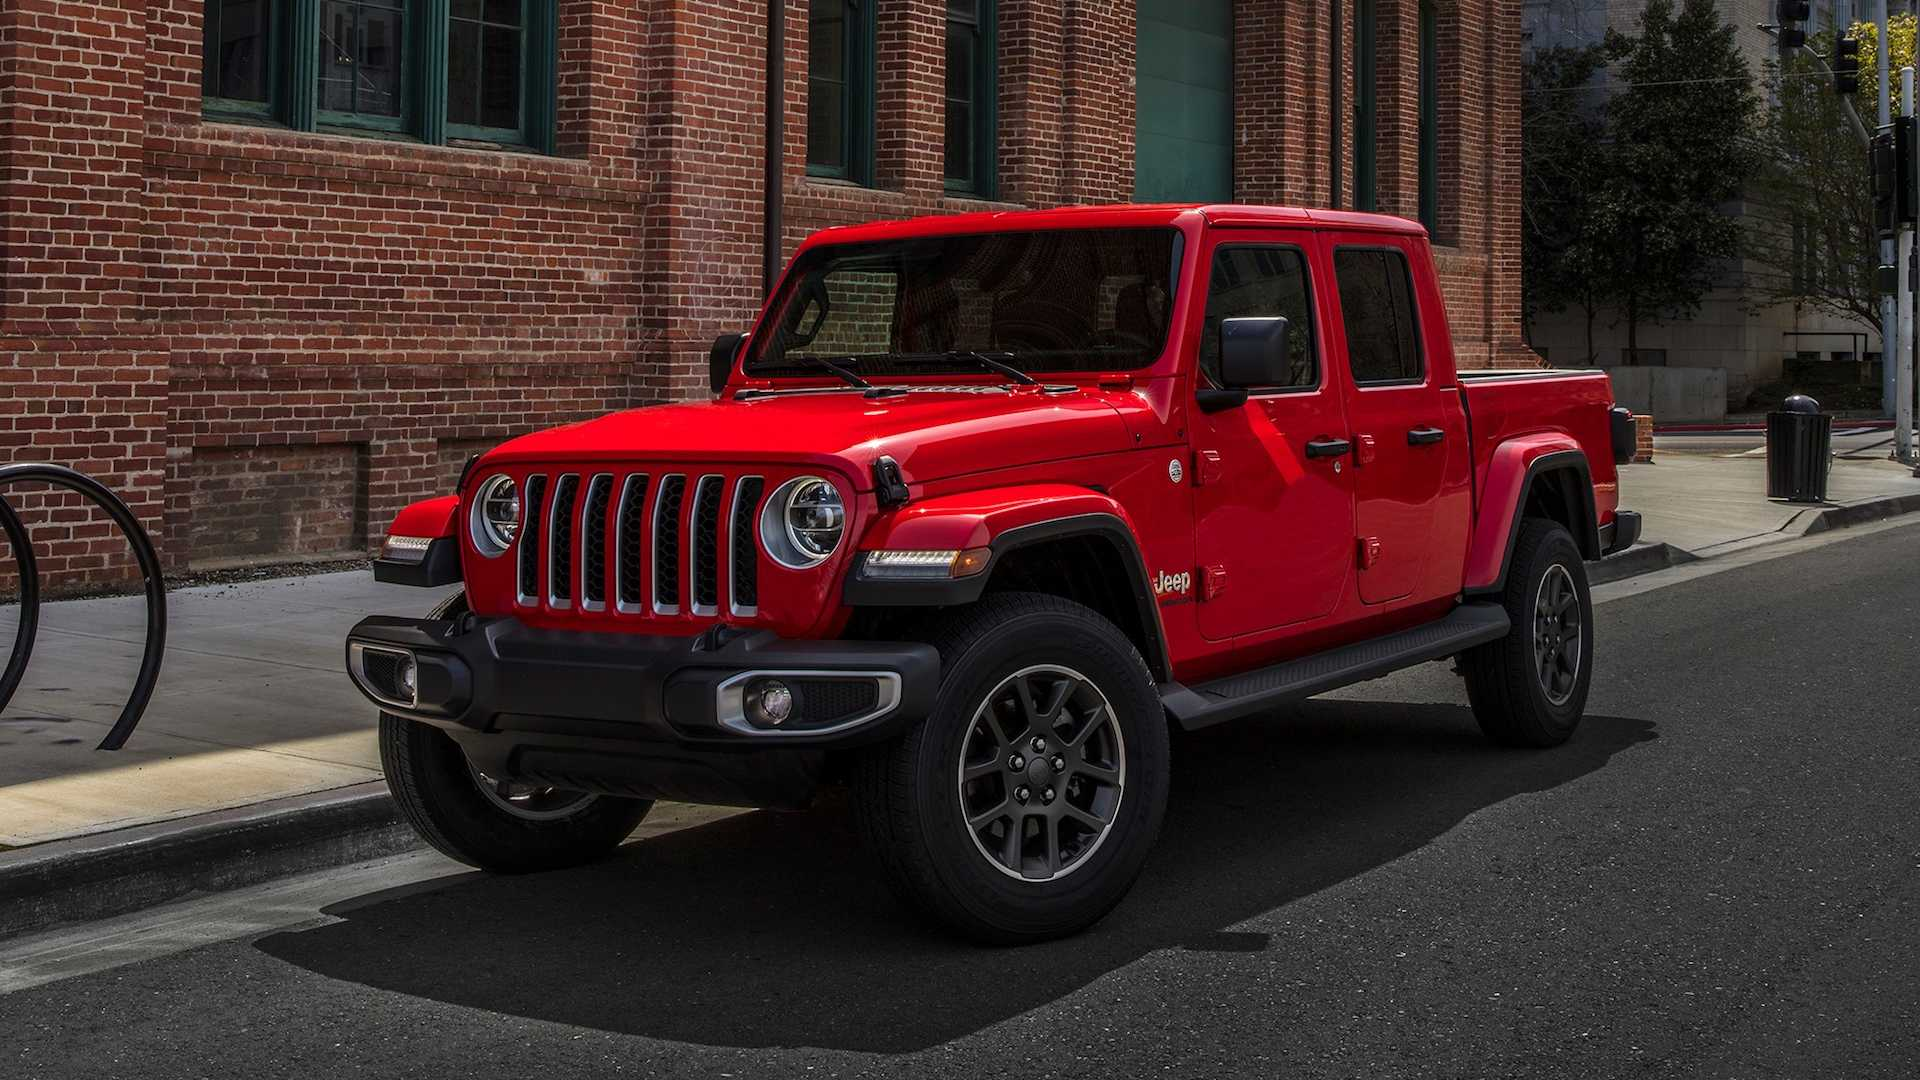 89 A 2020 Jeep Gladiator Lease Release Date